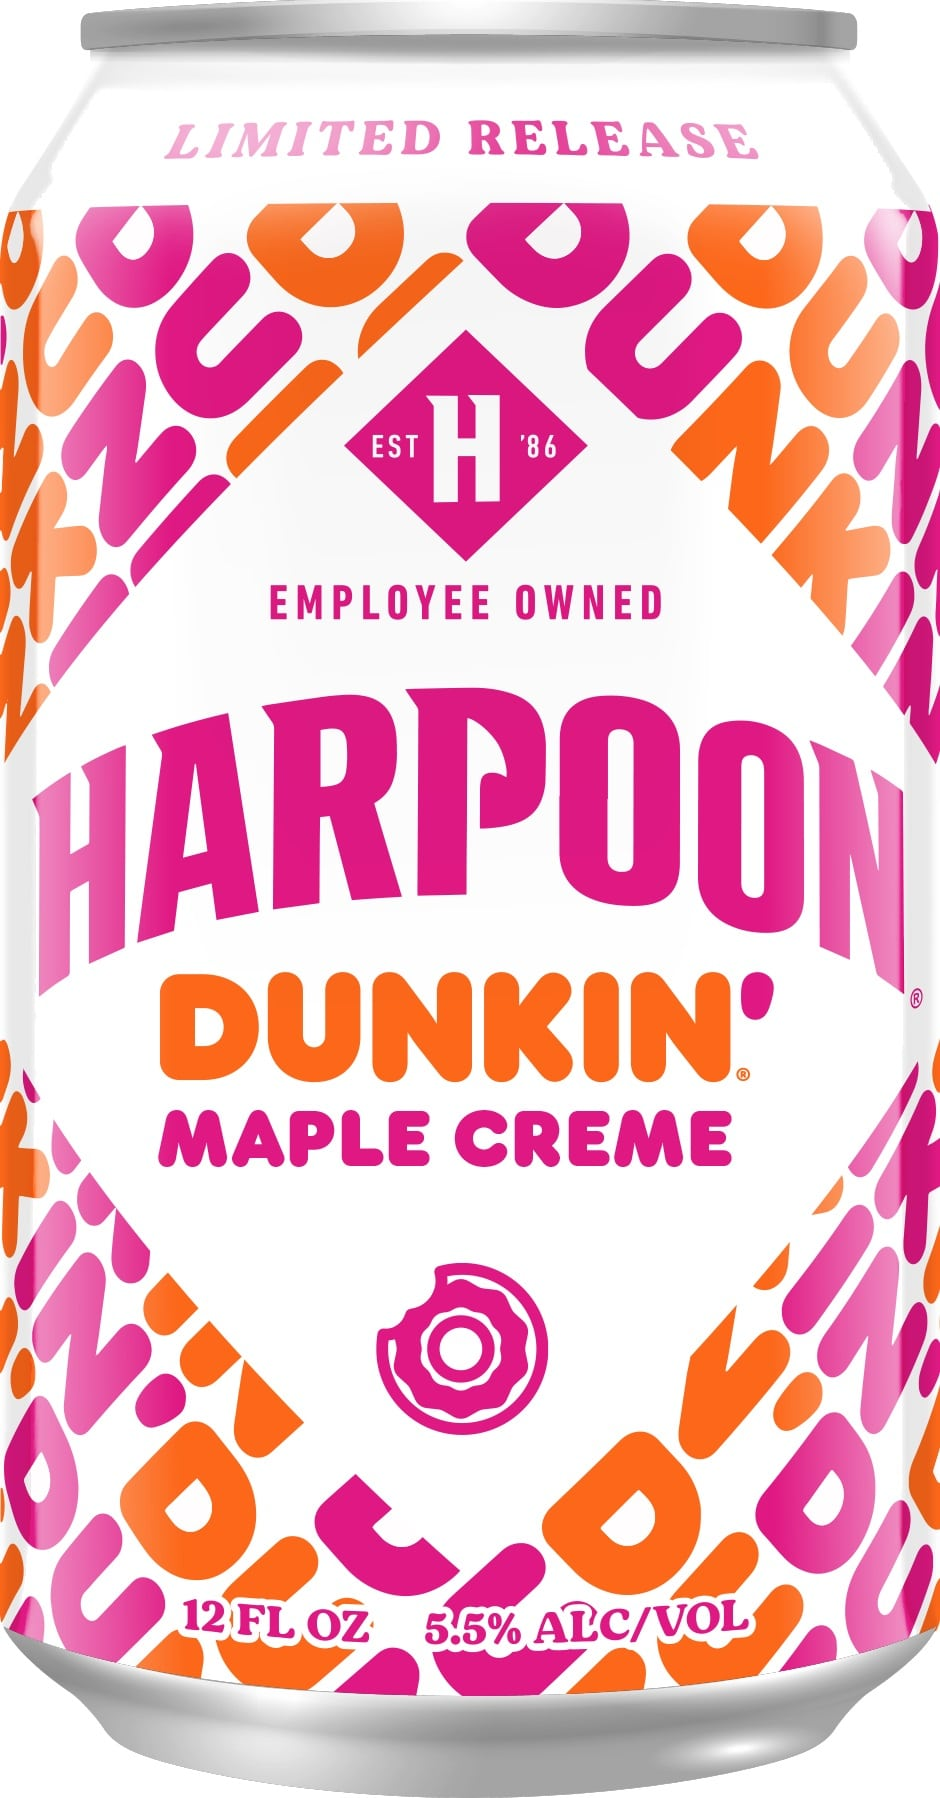 Harpoon Brewery is releasing 3 new Dunkin' Donuts-inspired beers for fall 18